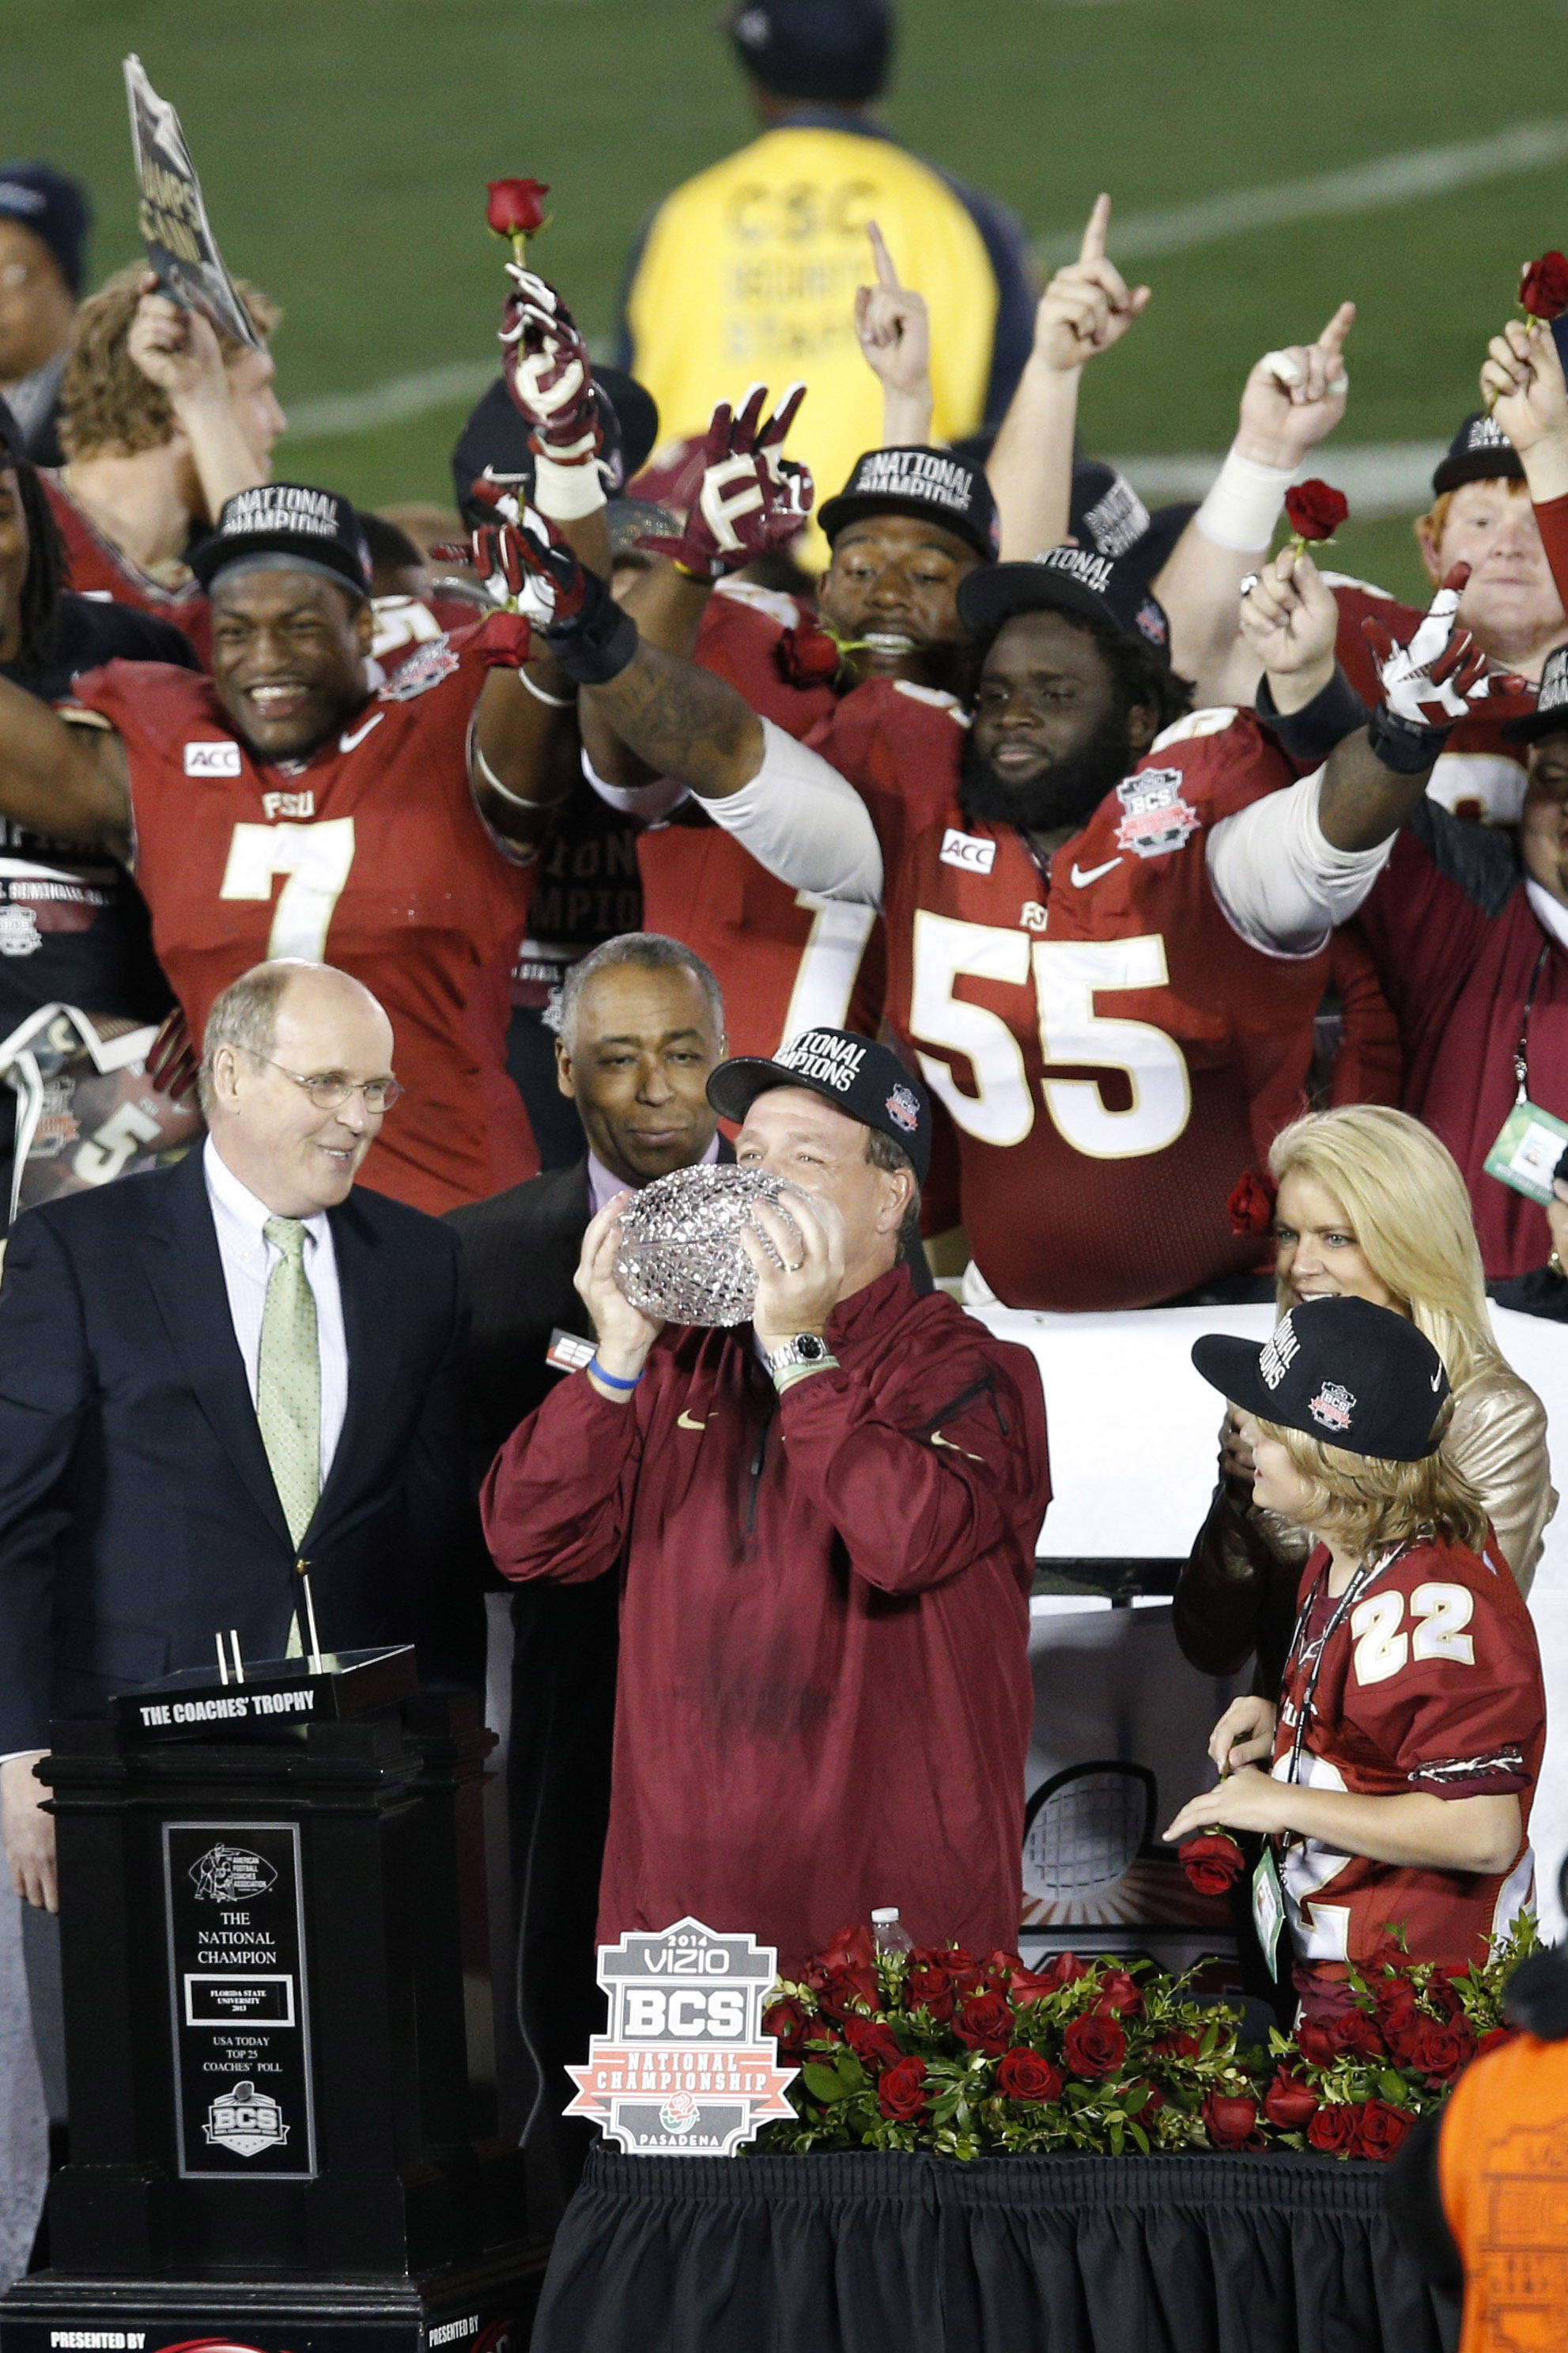 Jan 6, 2014; Pasadena, CA, USA; Florida State Seminoles head coach Jimbo Fisher kisses the Coaches Trophy after defeating the Auburn Tigers 34-31 in the 2014 BCS National Championship game at the Rose Bowl.  Mandatory Credit: Kelvin Kuo-USA TODAY Sports